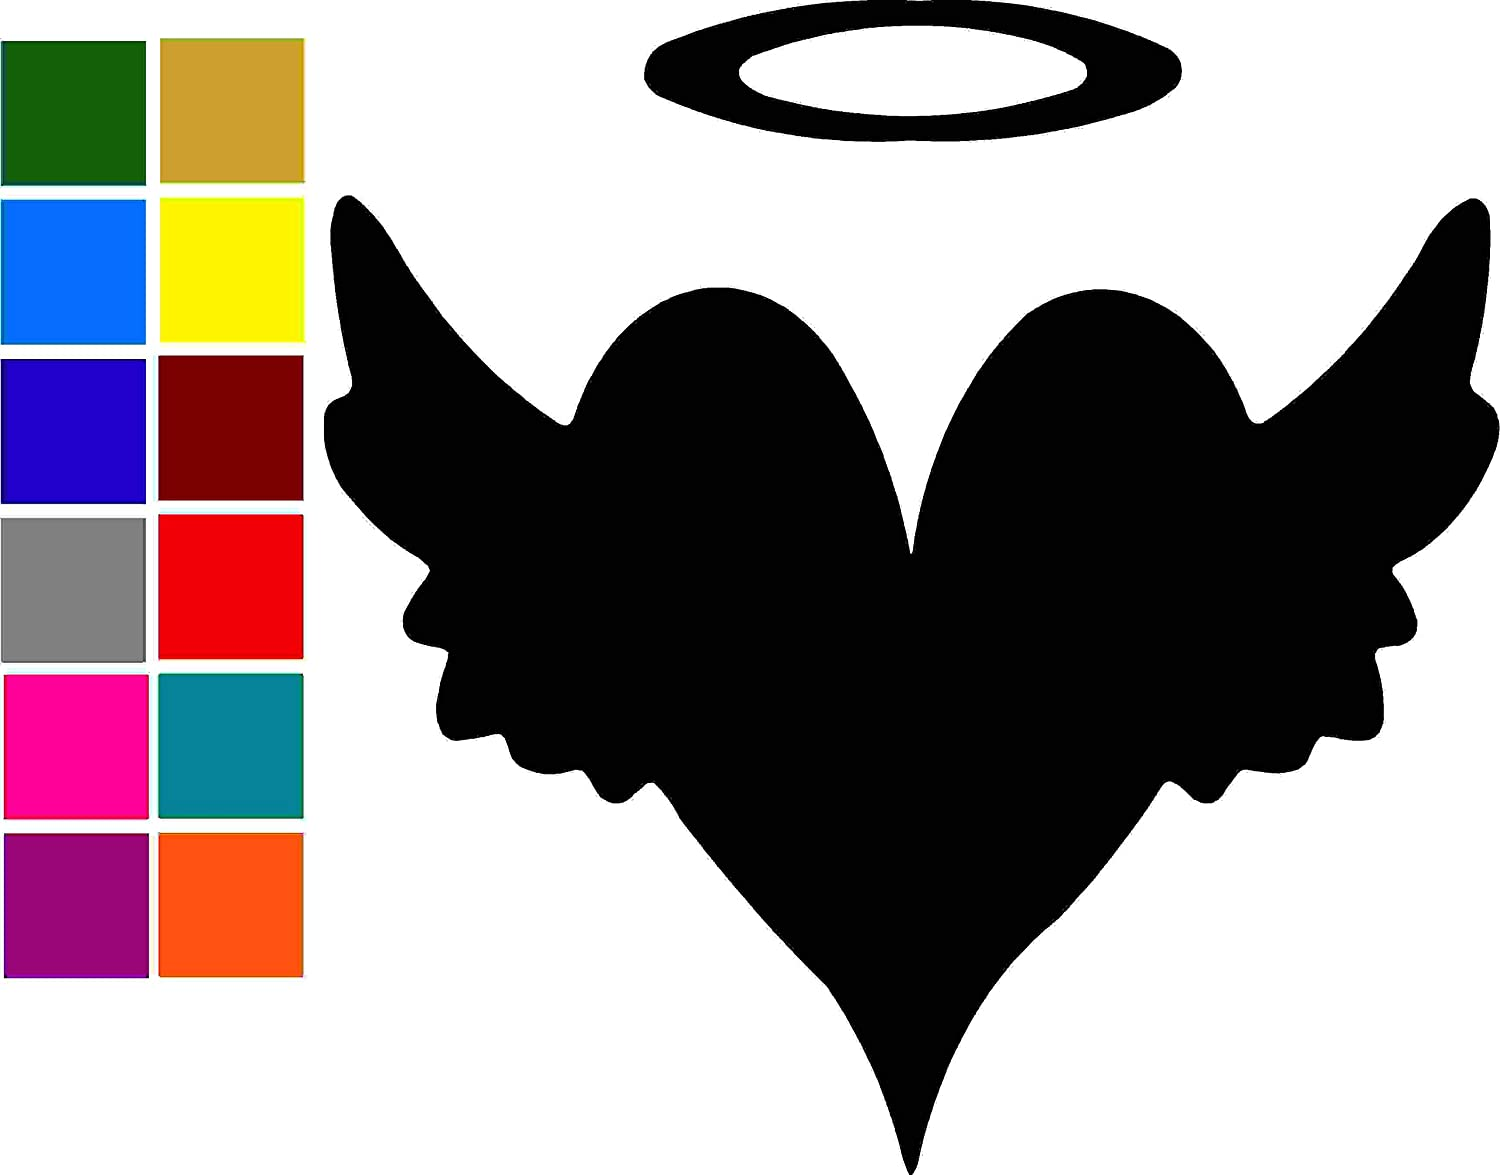 Heart Wing Halo Car Window Tumblers Wall Decal Sticker Vinyl Laptops Cellphones Phones Tablets Ipads Helmets Motorcycles Computer Towers V /& T Gifts